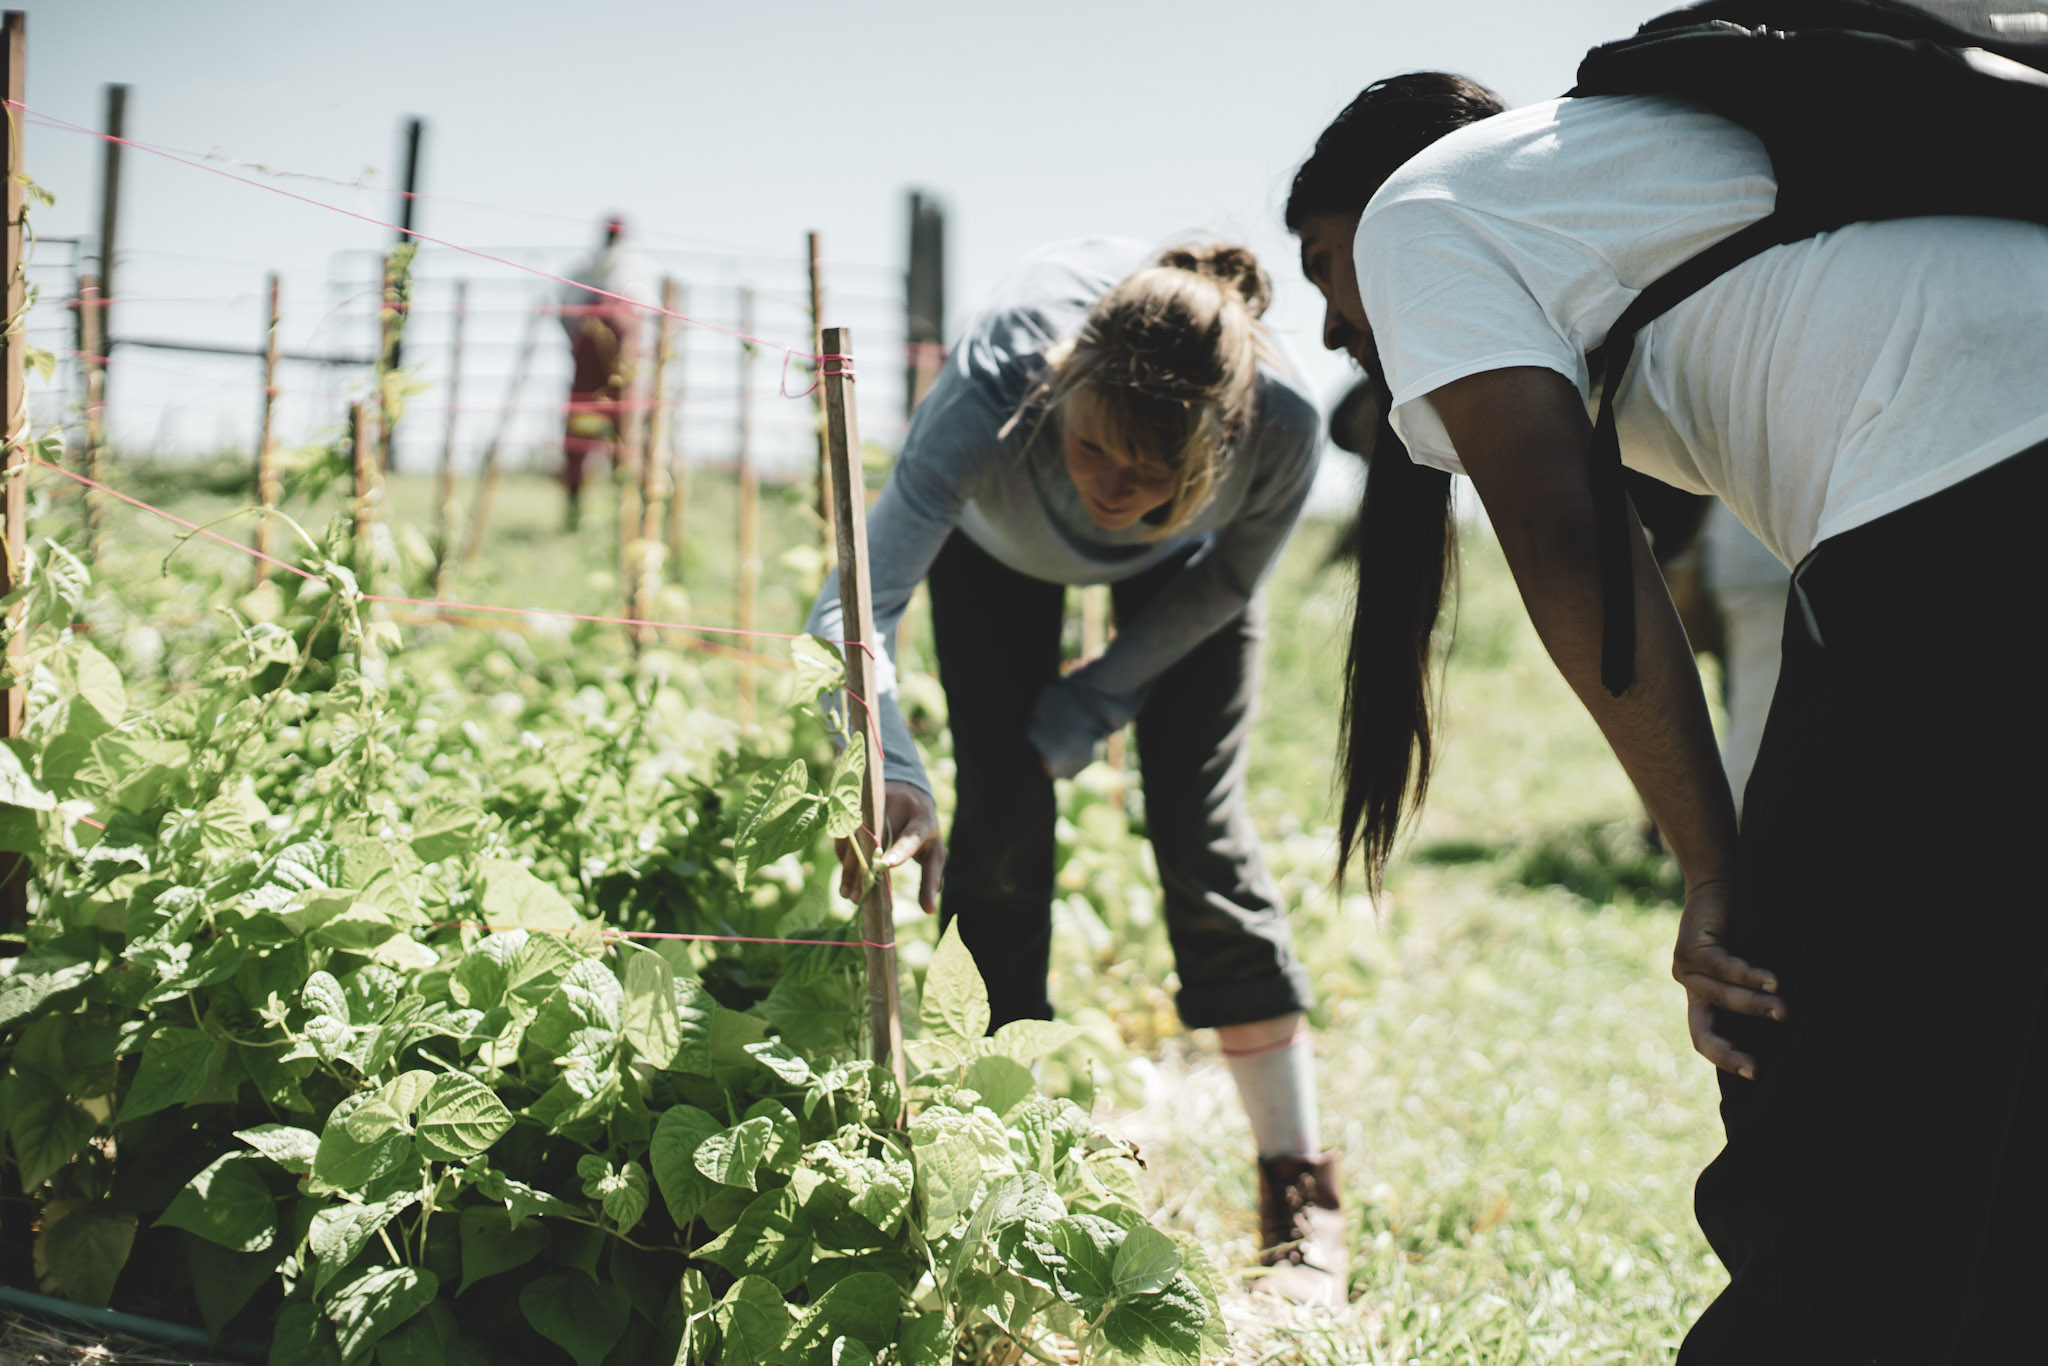 sponsor a garden - Feed the Community by sponsoring a Food hub with a donation of $5,000 or more